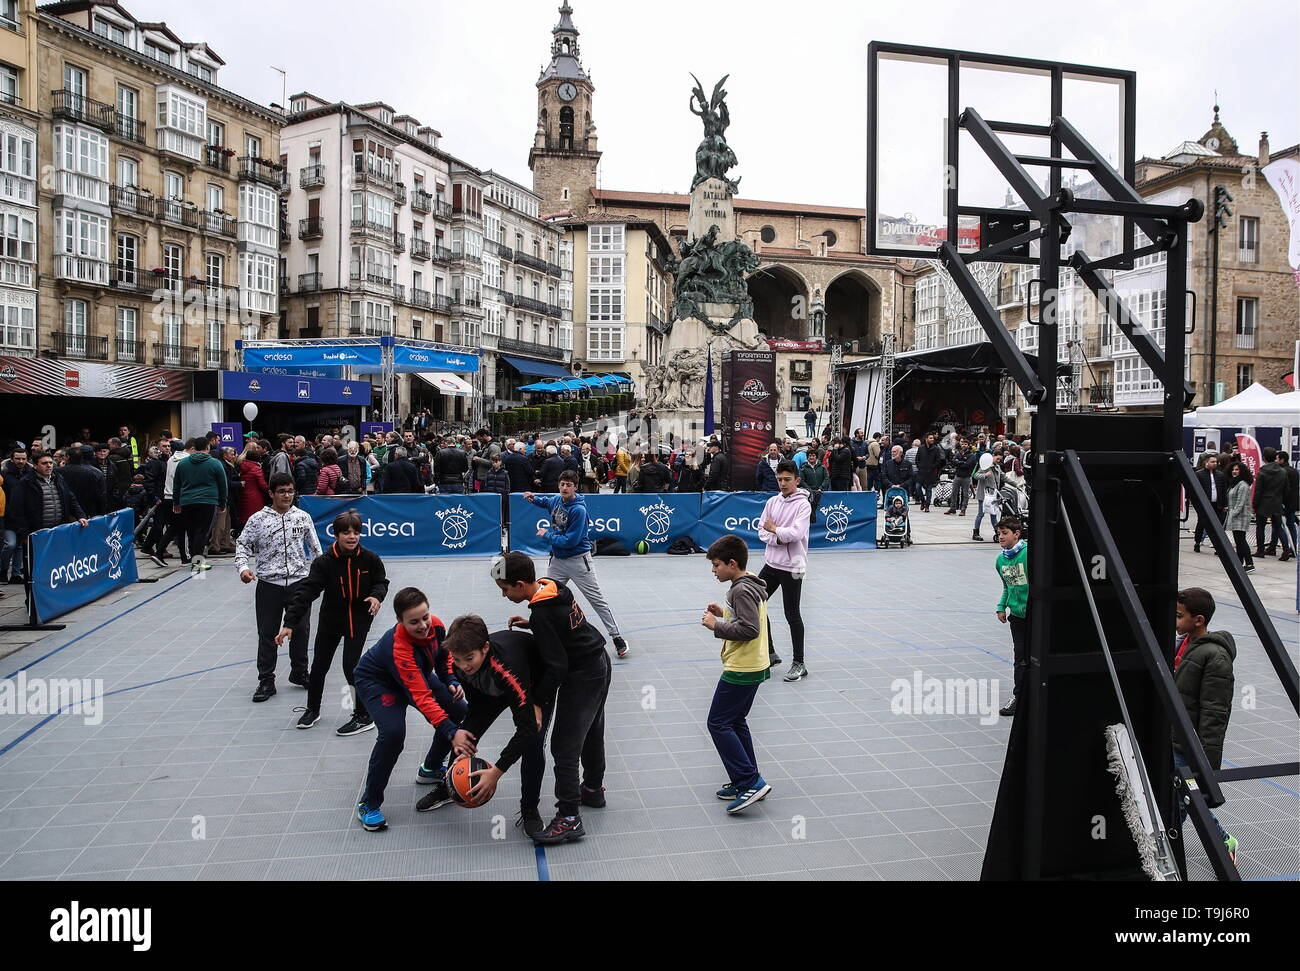 Vitoria Gasteiz, Spain. 19th May, 2019. VITORIA-GASTEIZ, SPAIN - MAY 19, 2019: Kids playing basketball in a fan zone during the 2019 Basketball Euroleague Final Four in Plaza de la Virgen Blanca. Valery Sharifulin/TASS Credit: ITAR-TASS News Agency/Alamy Live News - Stock Image